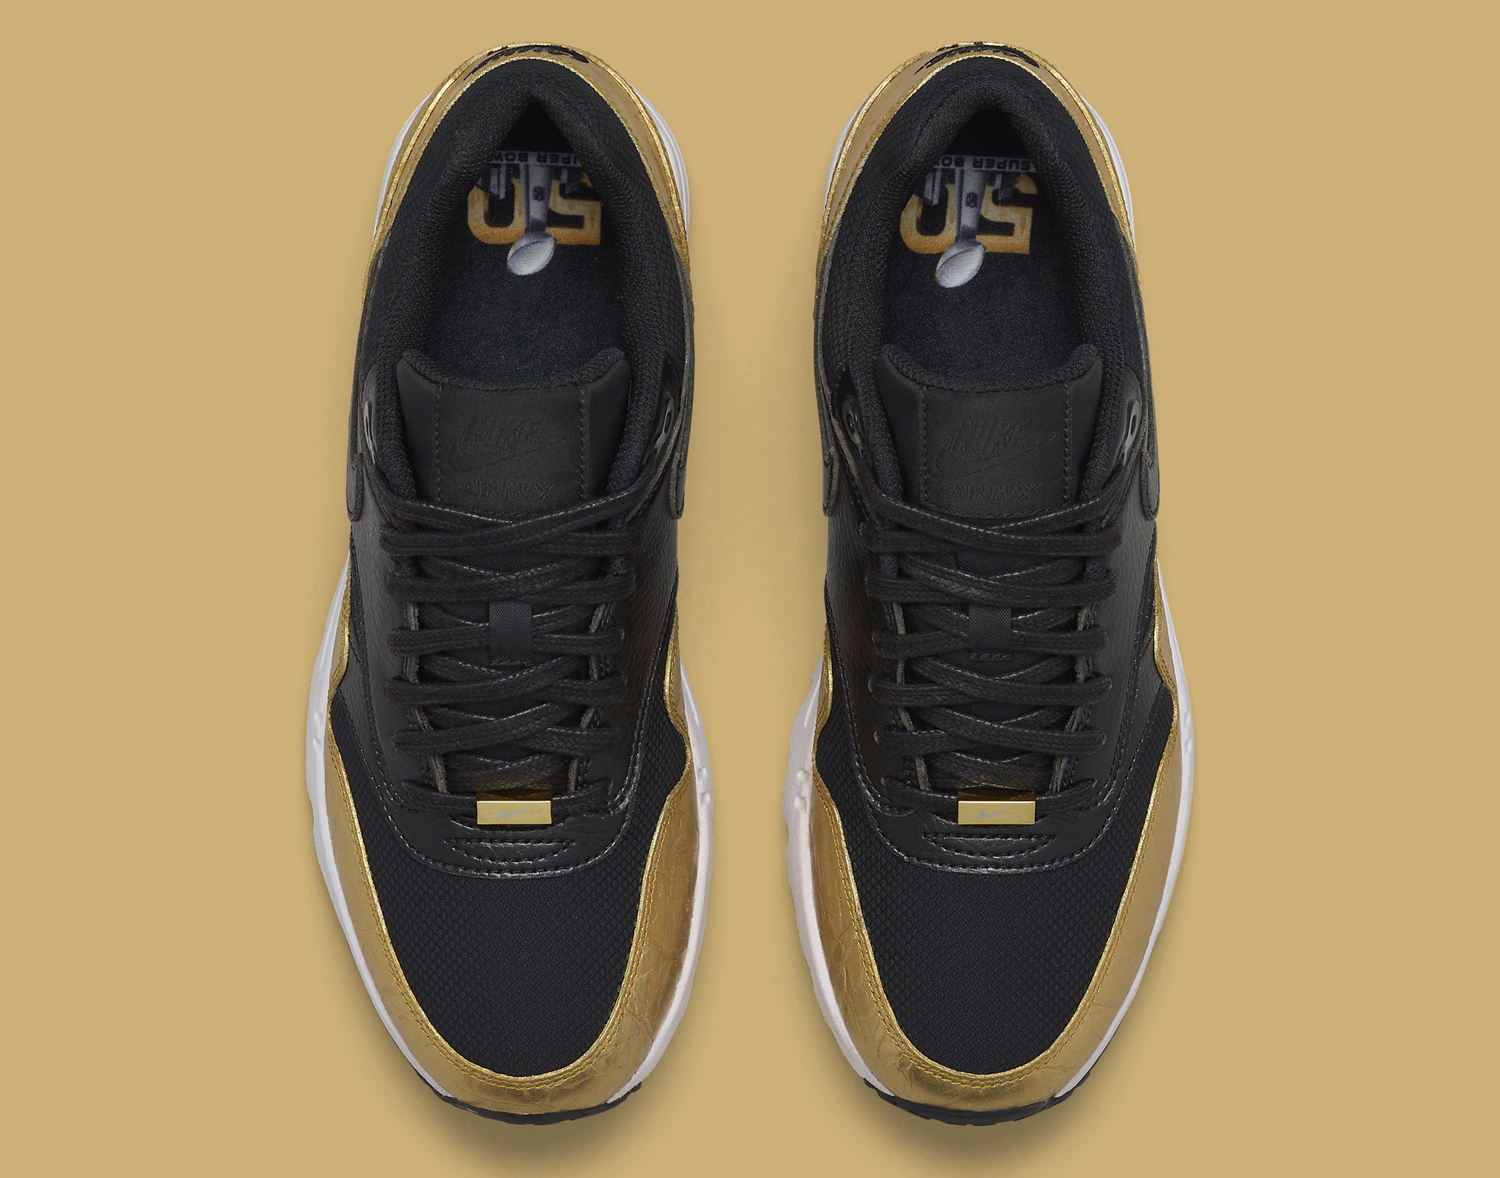 Nike Made Special Air Max 1s for Super Bowl 50 | Sole Collector